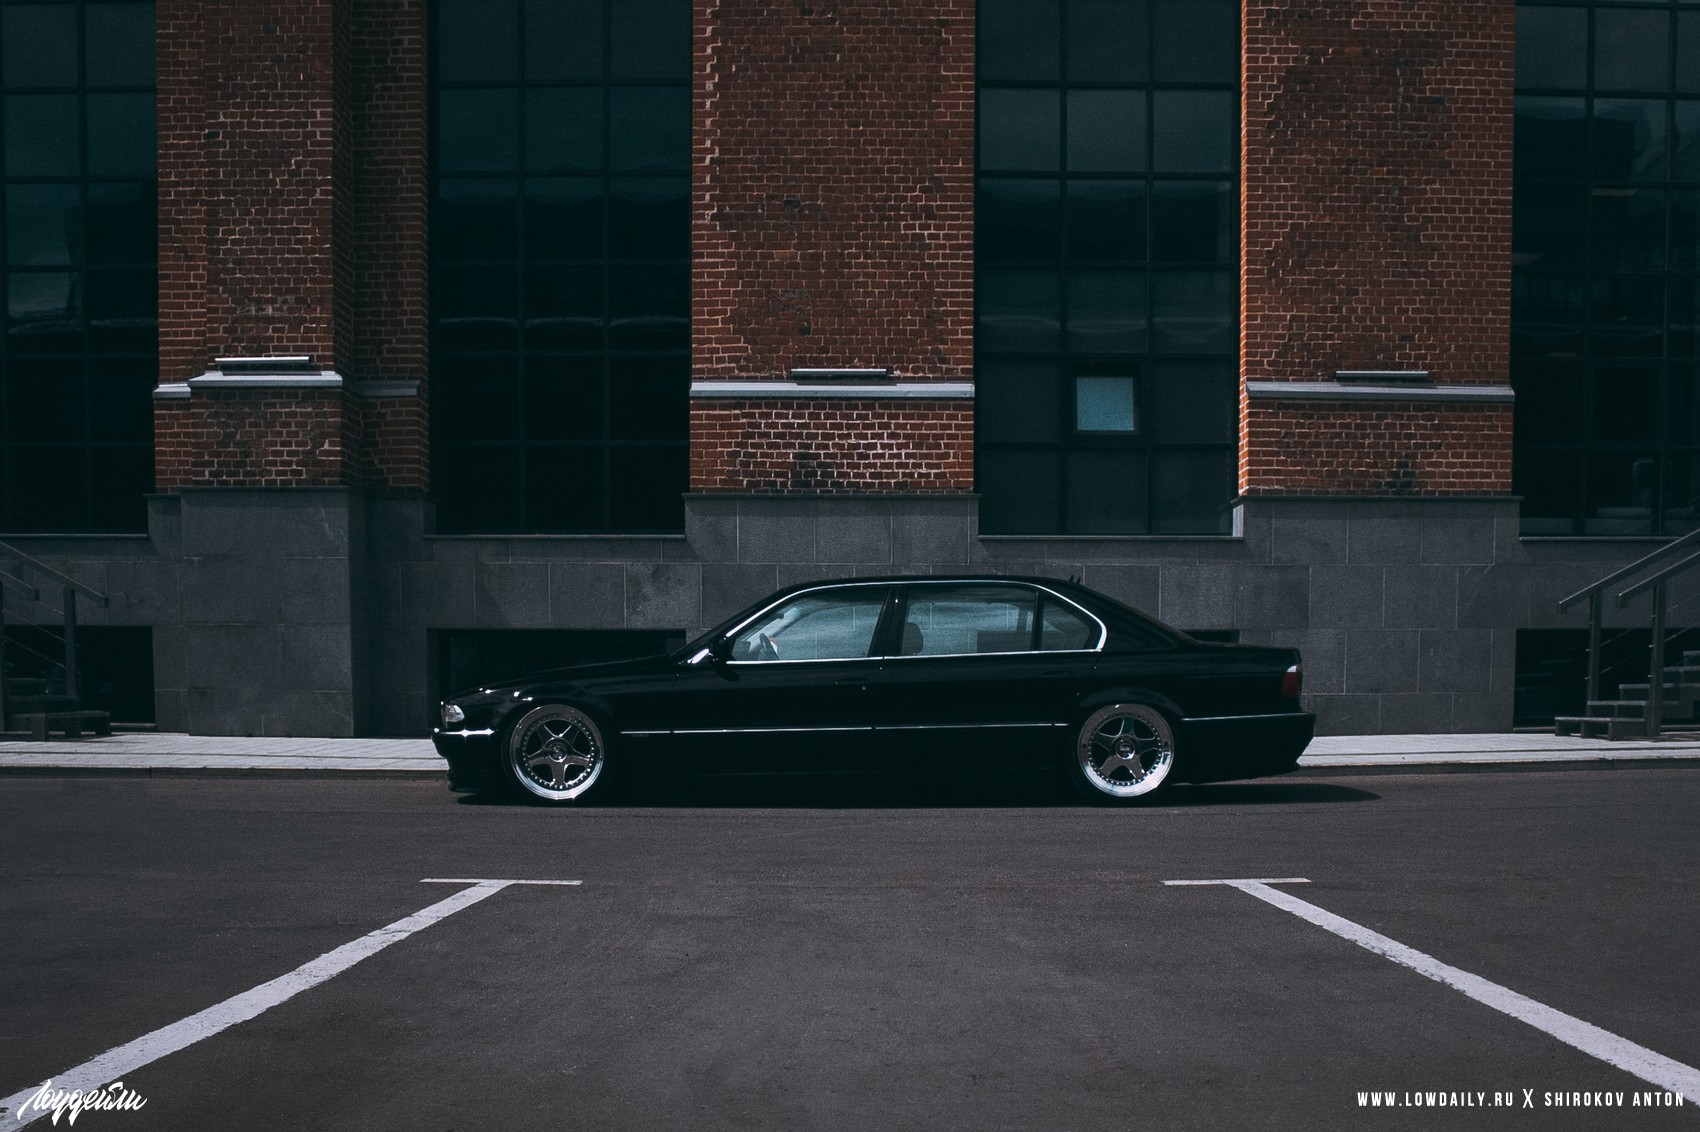 BMW E38 Lowdaily _MG_7027